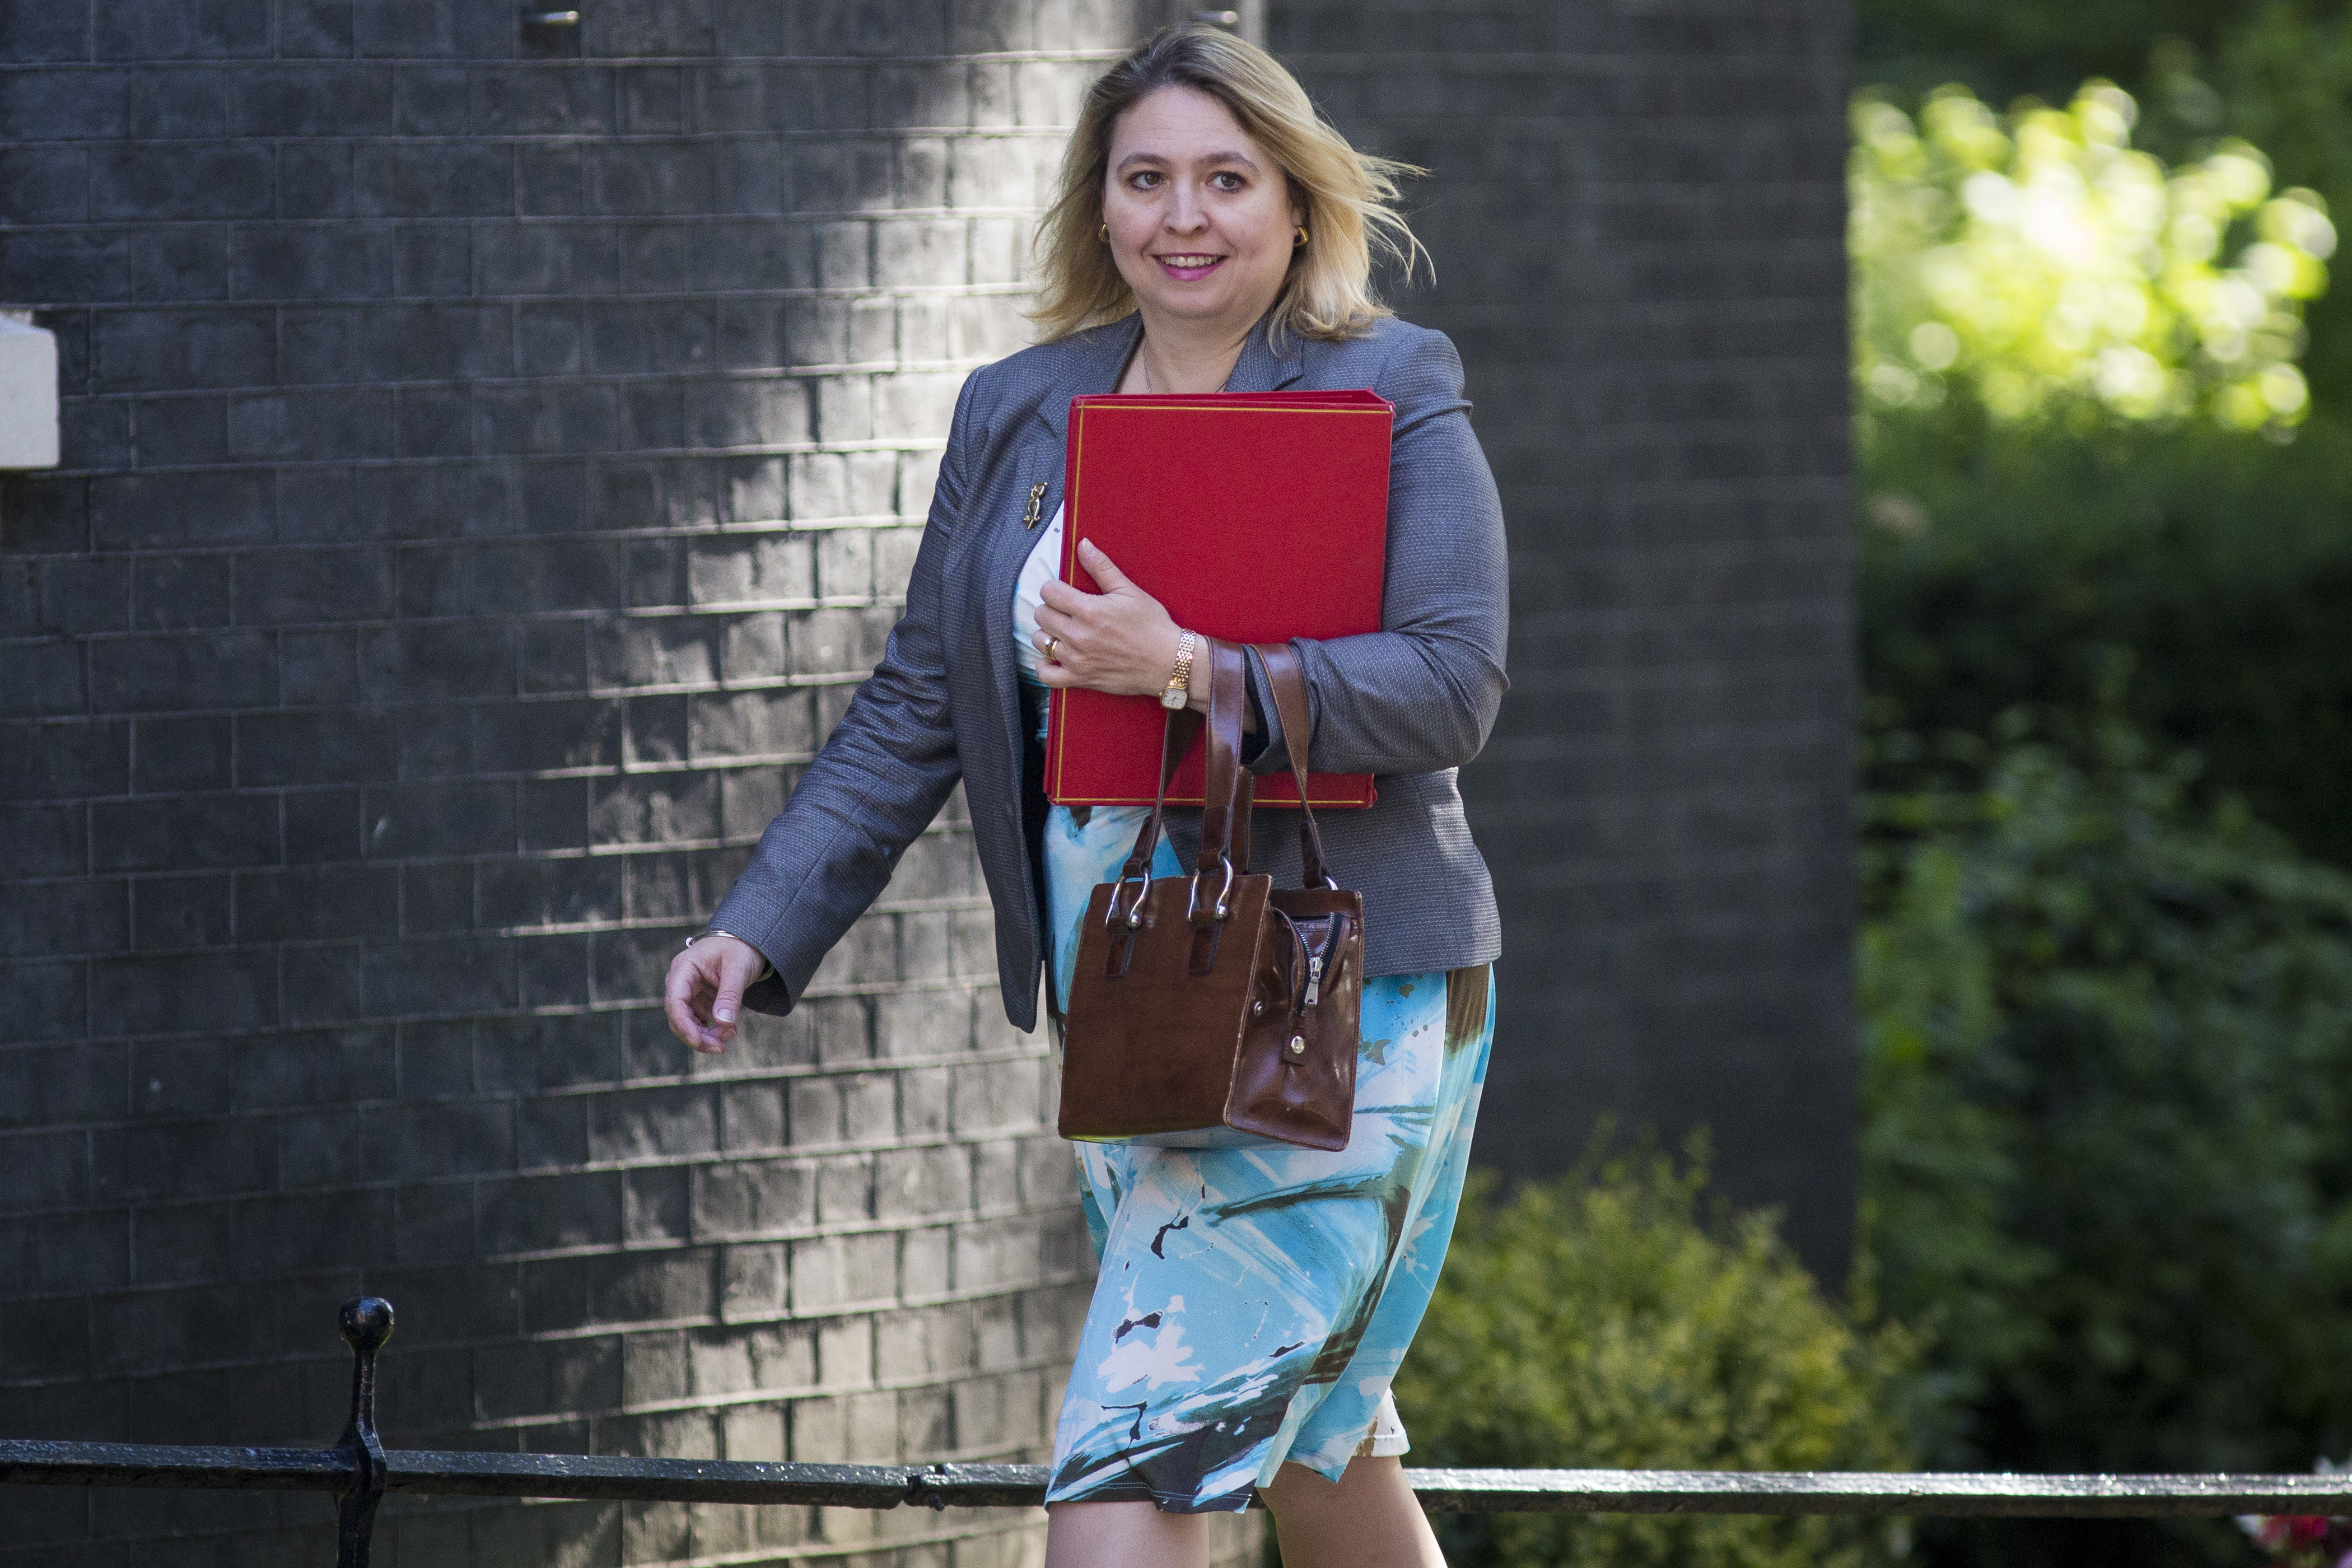 Secretary of State for Culture, Media and Sport Karen Bradley arrives at Downing Street for the weekly cabinet meeting on July 19, 2016 in London, England.